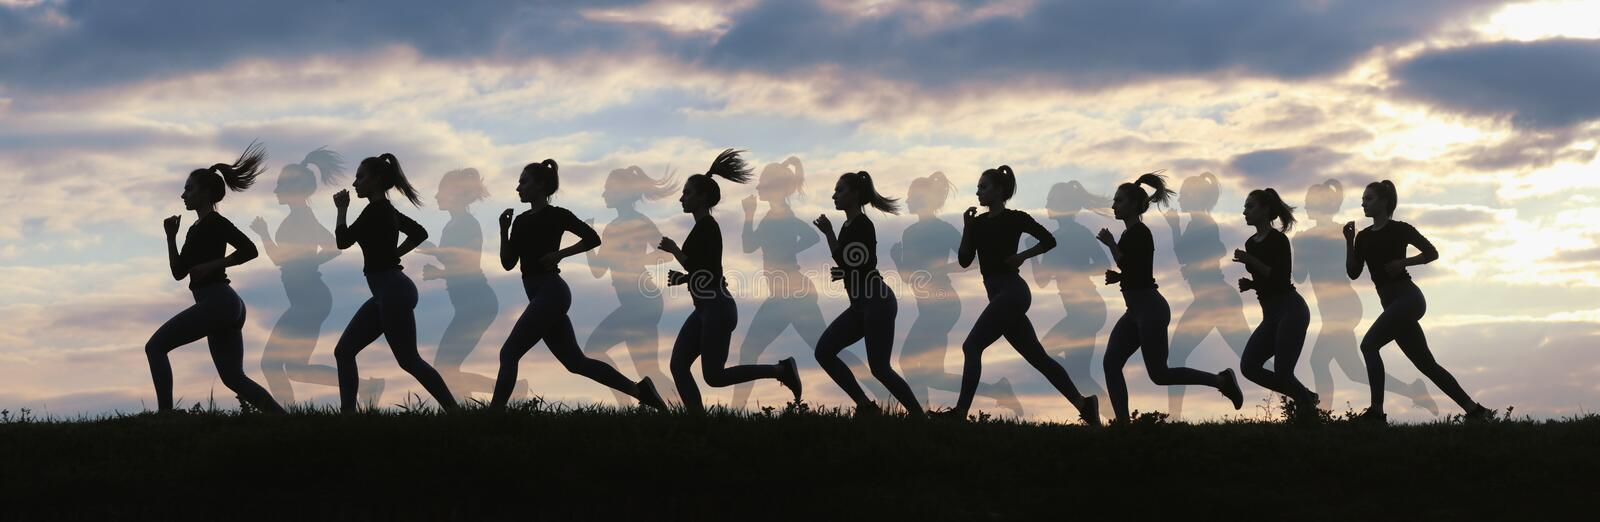 Fitness woman running on sunrise, Running silhouettes, Female runner silhouette royalty free stock photos